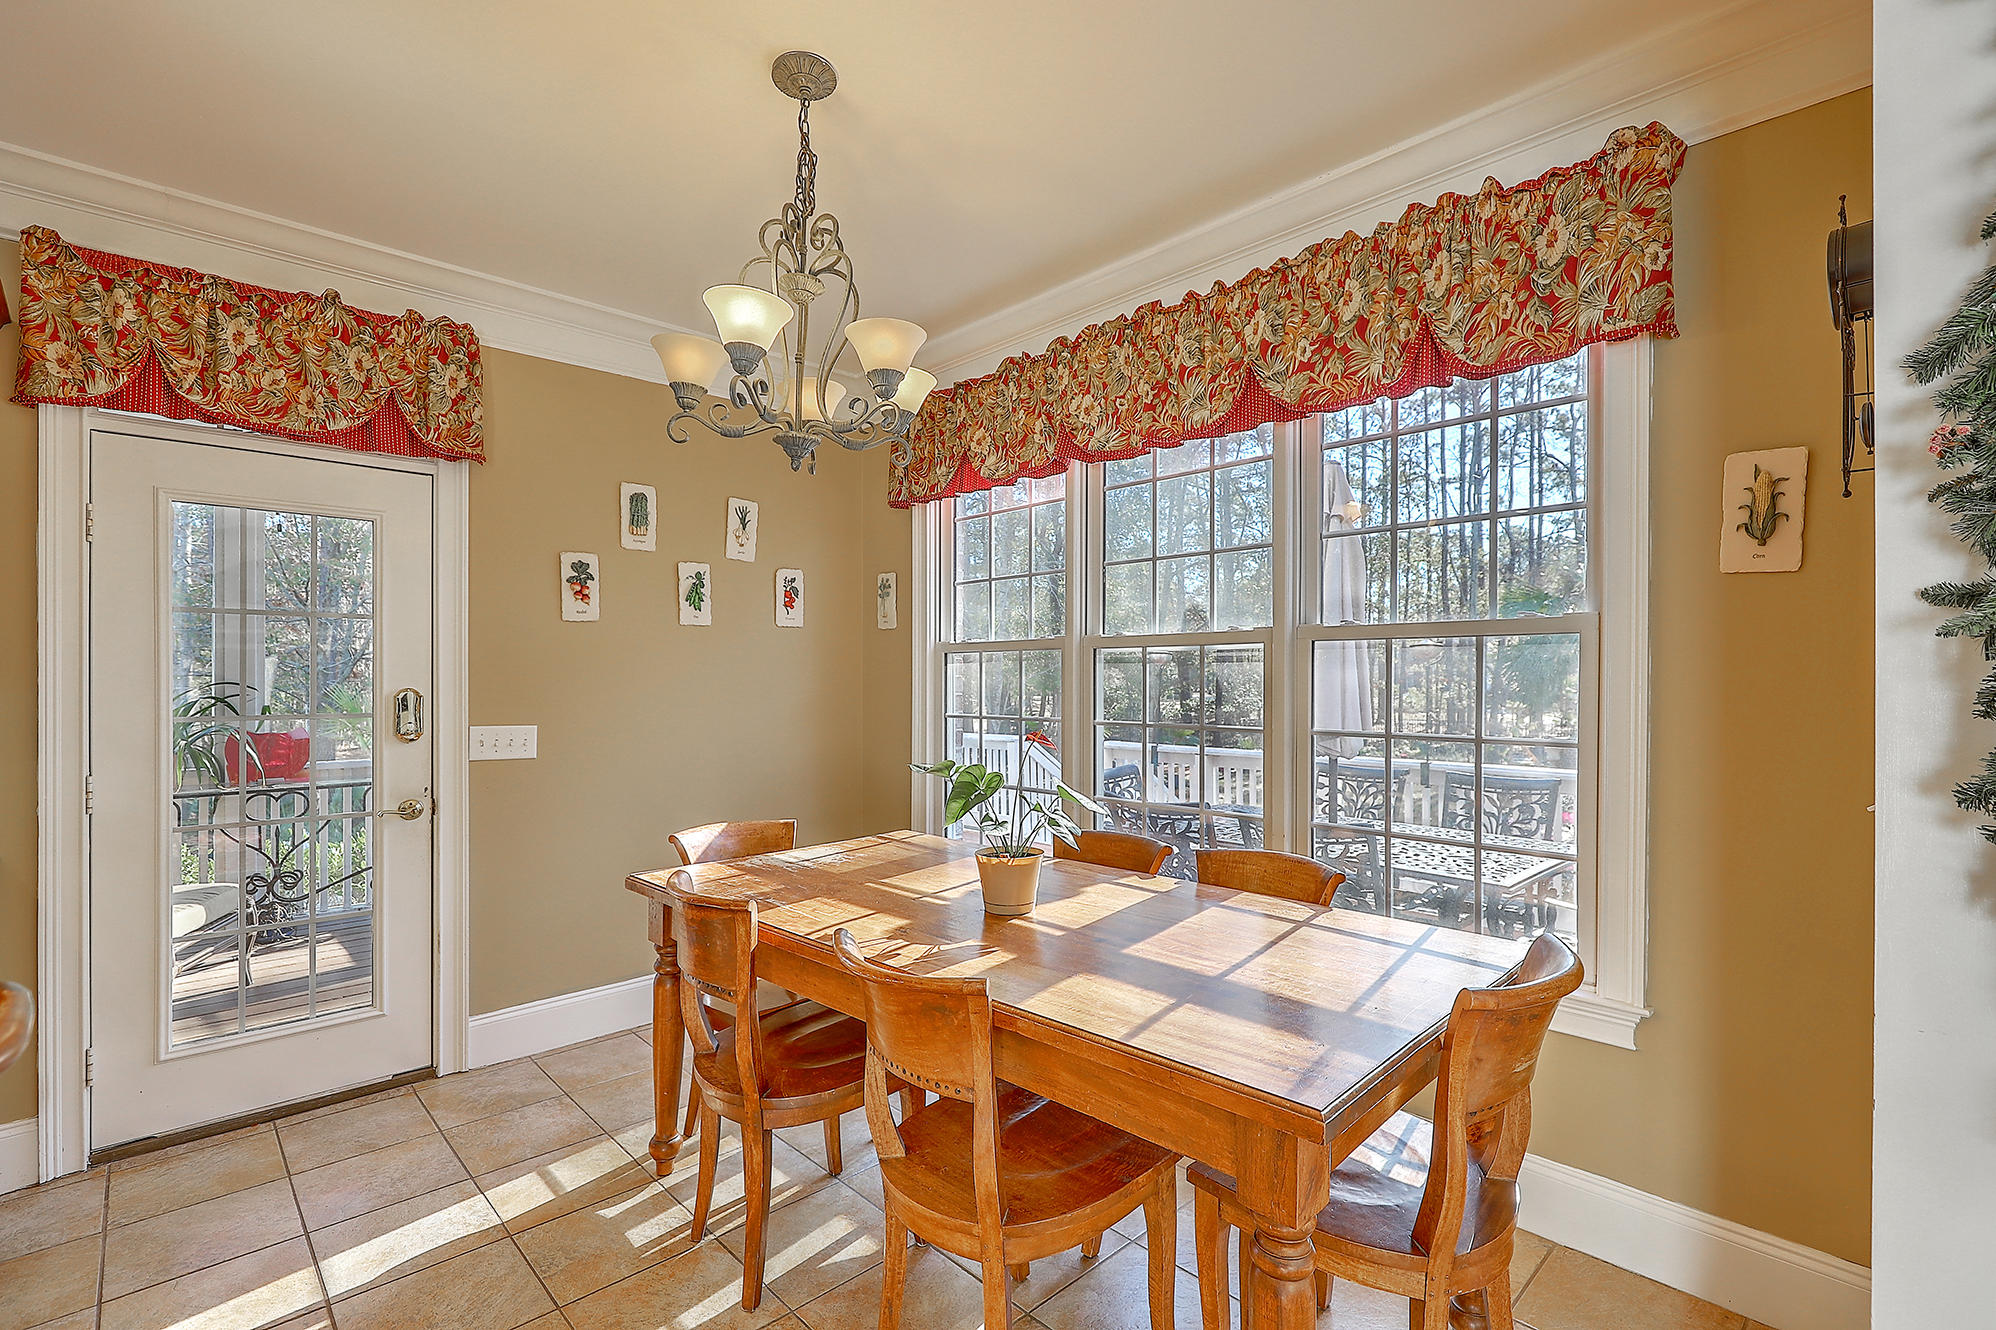 Dunes West Homes For Sale - 1784 Shell Ring Circle, Mount Pleasant, SC - 21